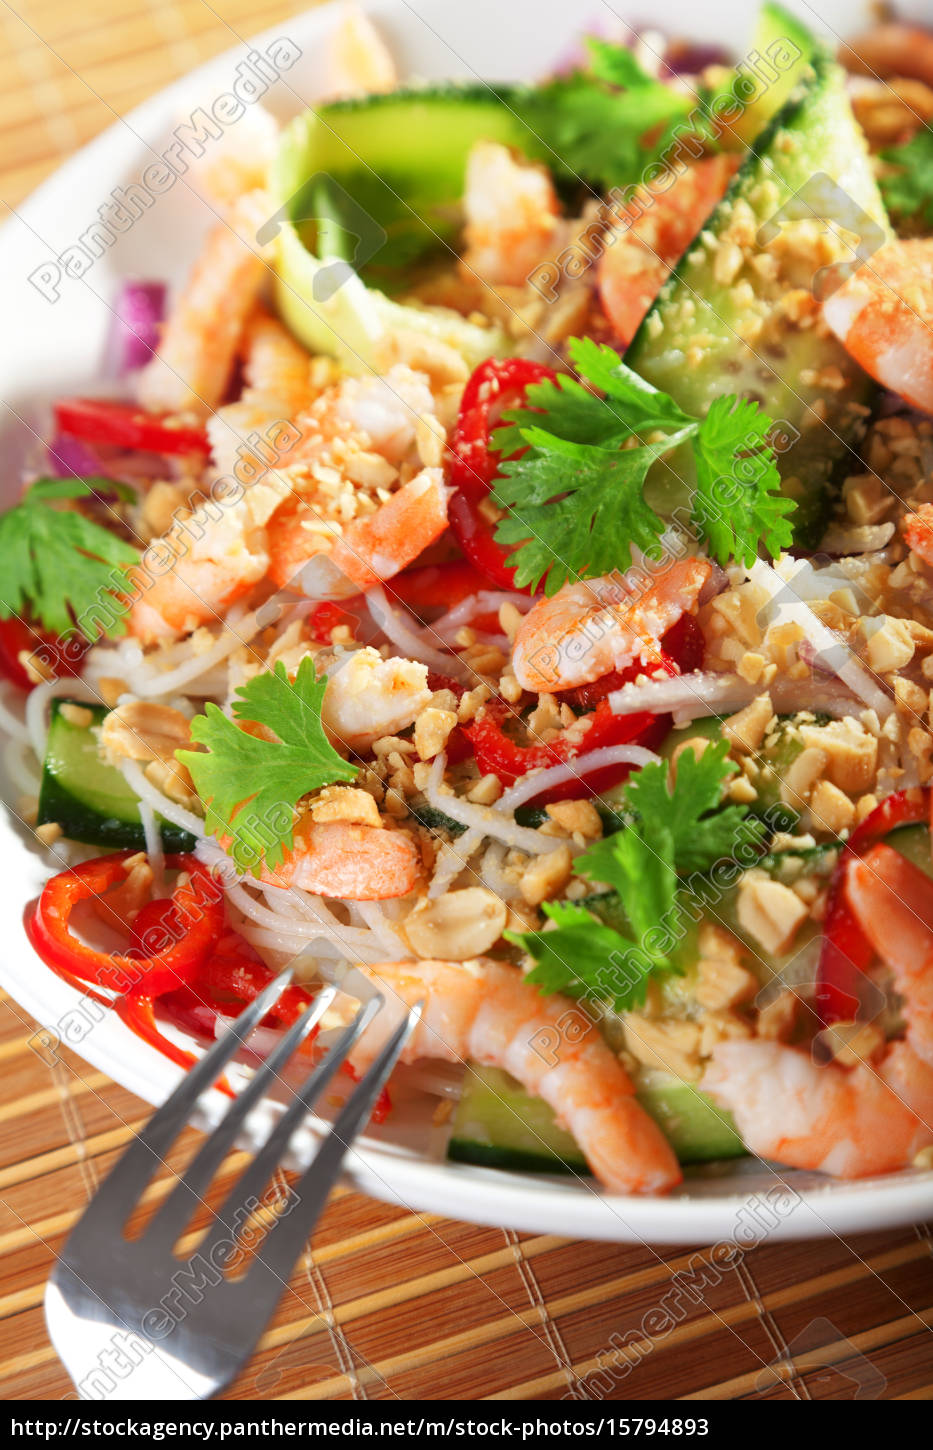 asian, salad, with, noodles, asian, salad, with - 15794893